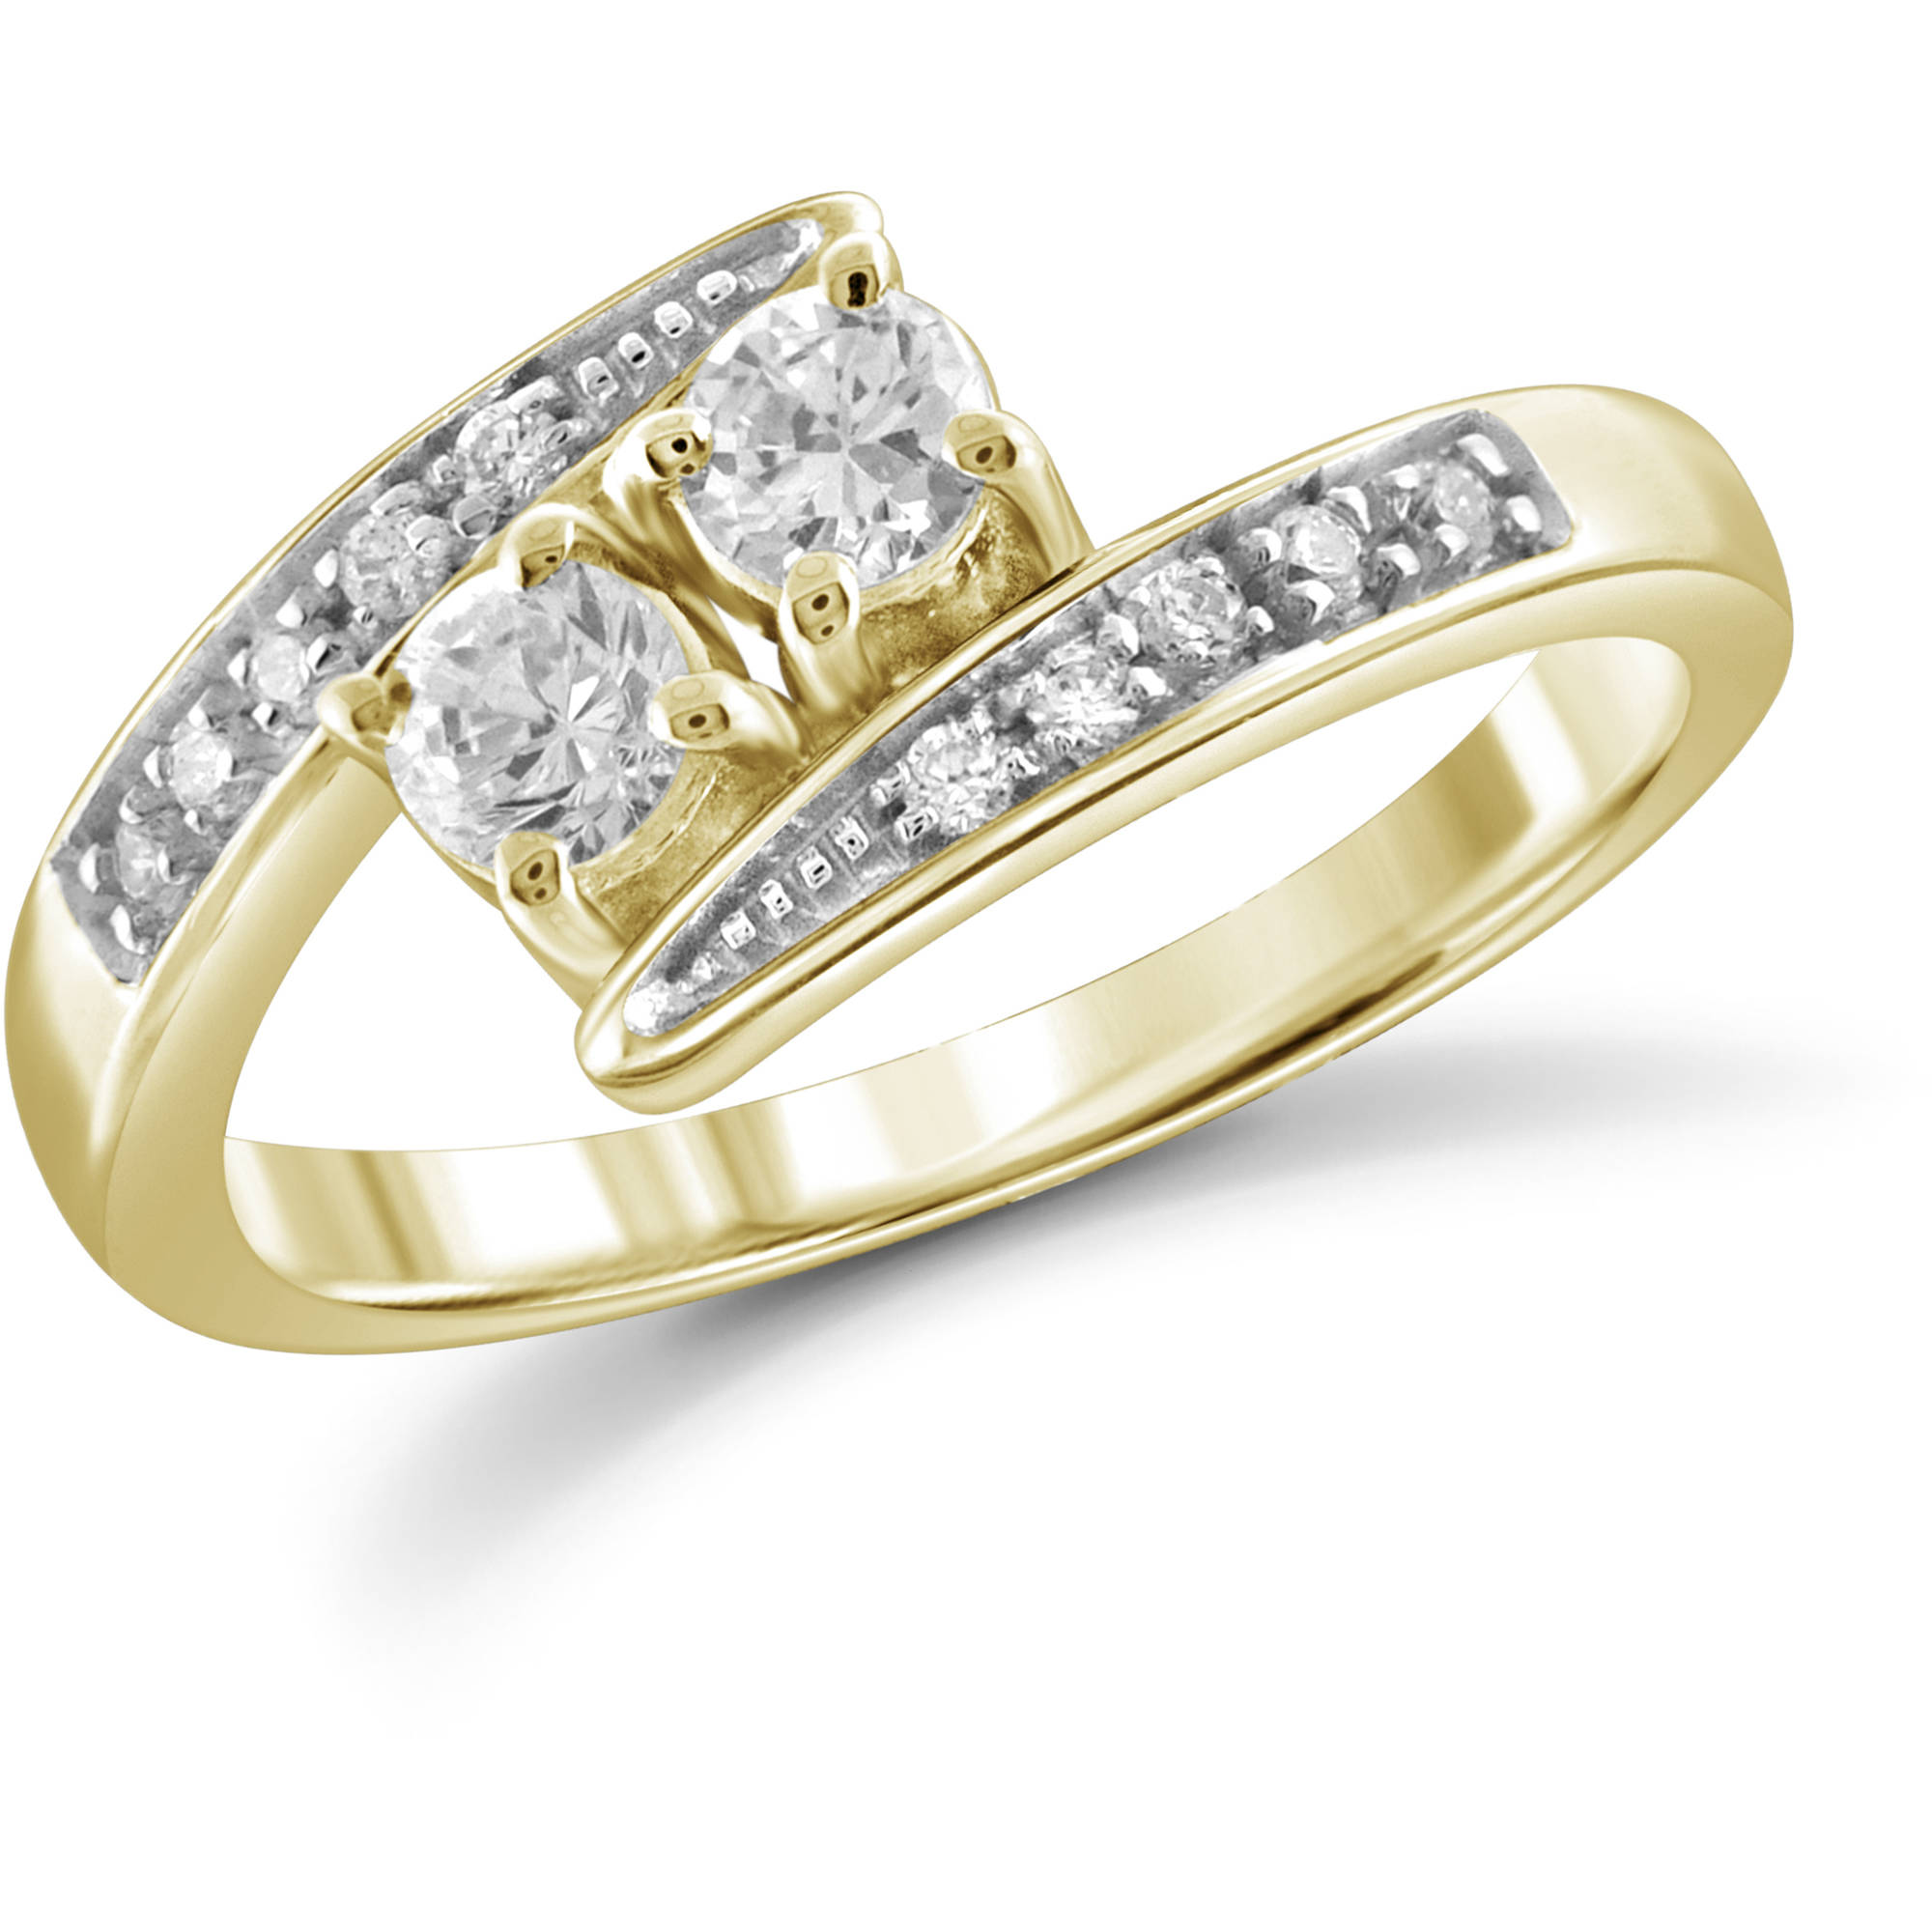 JewelersClub 1/2 Carat TW White Diamond 14Kt Yellow Gold Two-Stone Engagement Ring